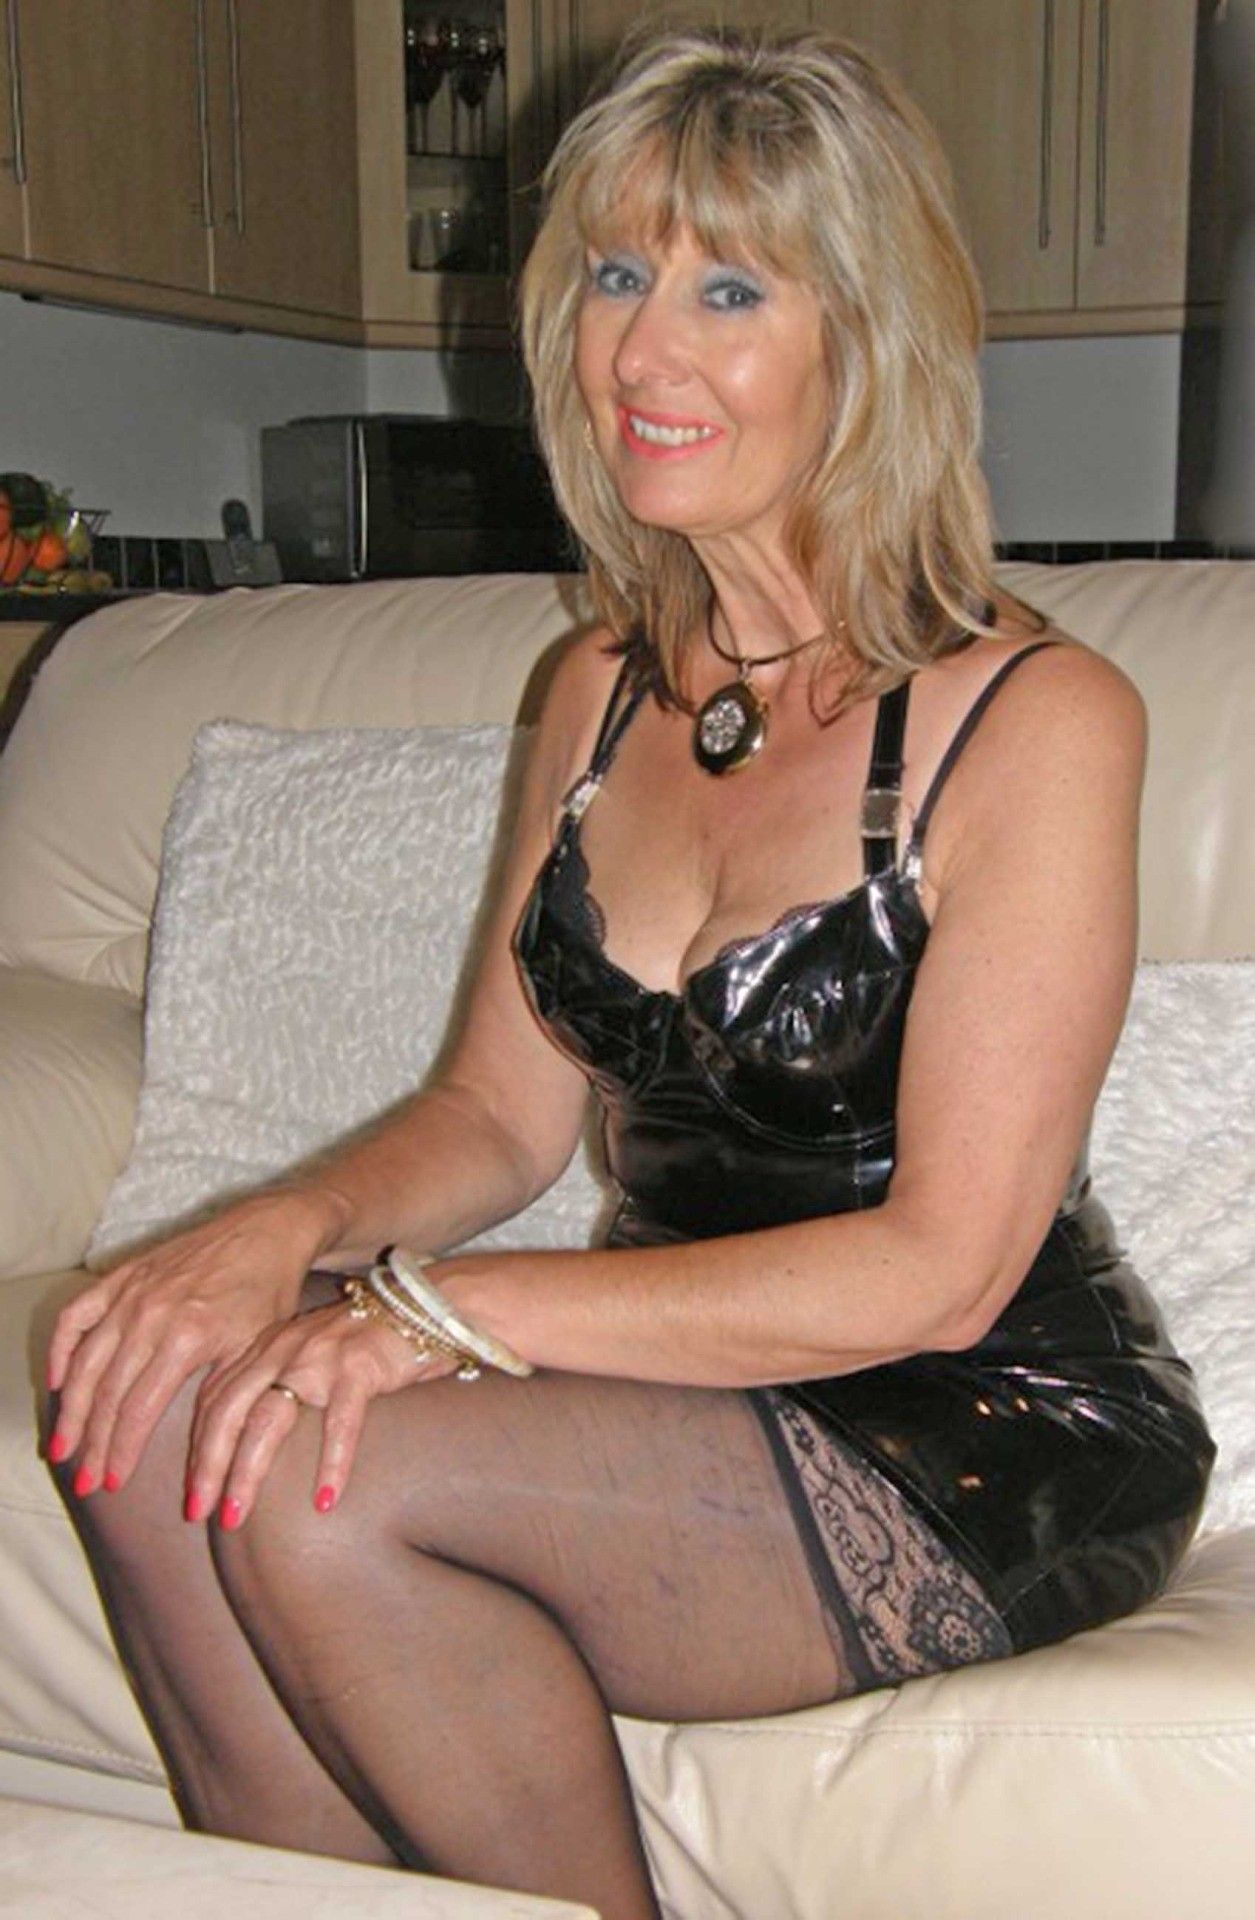 francestown milfs dating site Milftasticcom is a milf dating site, sign up now for free and get access to all of our milfs instantly the easiest milf hookup it's not easy hooking up with milfs or sugar mamas out on the streets when you're milf dating, you want to be discreet you need a secret, sexy solution and that's milftasticcom.